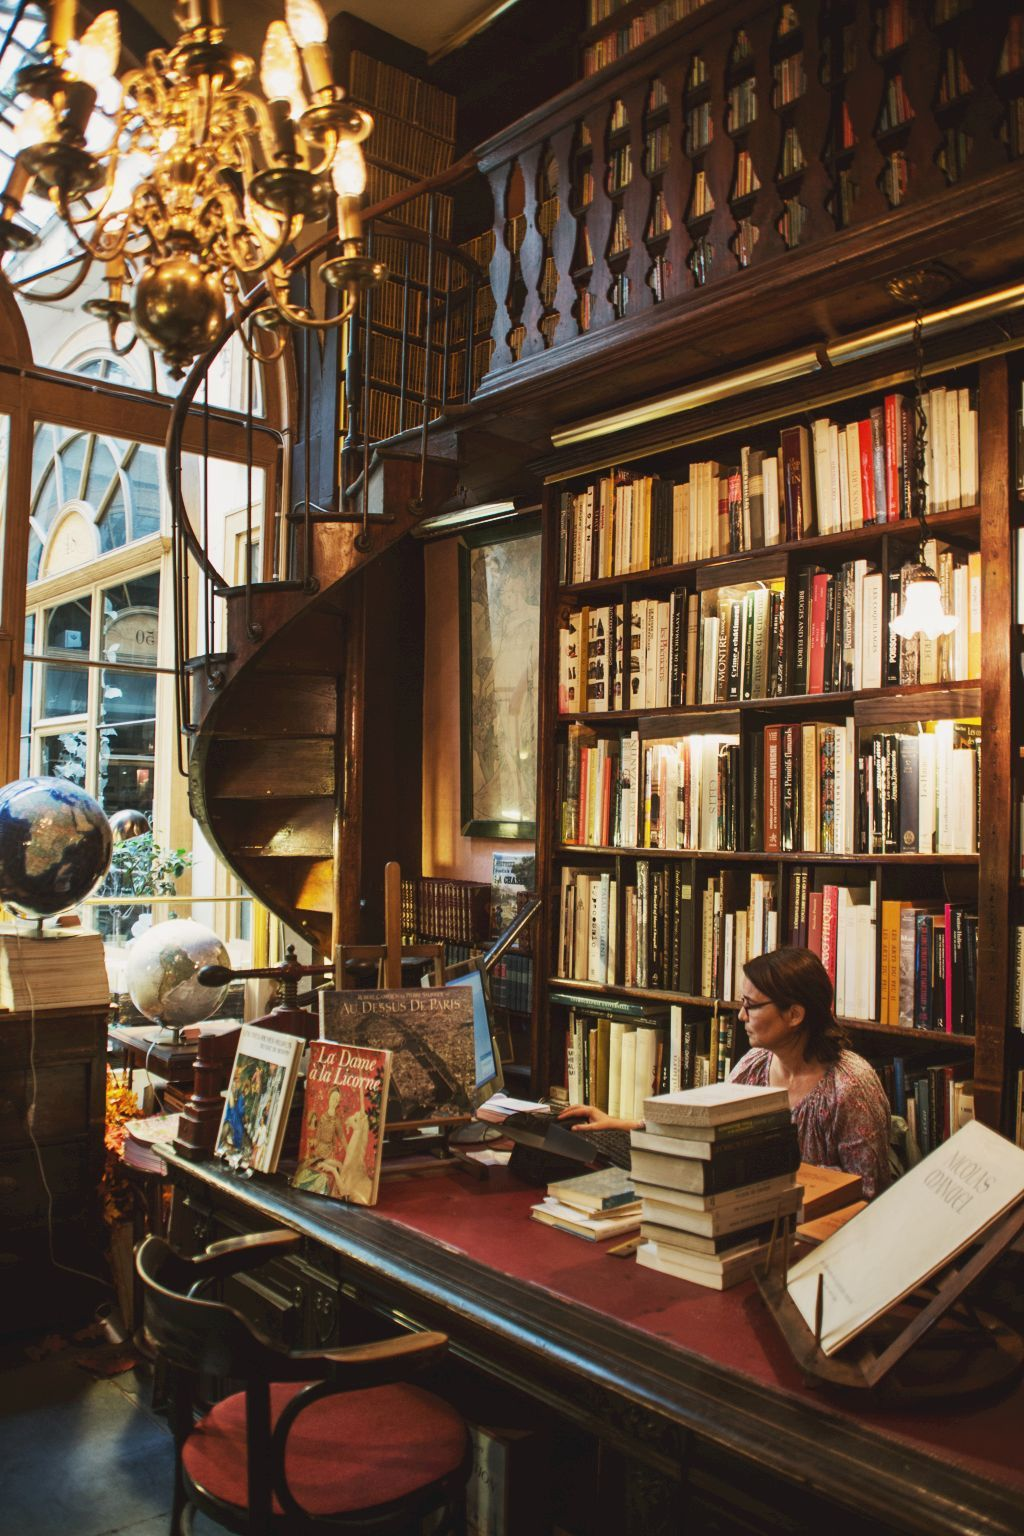 Awesome 60 Awesome Ideas Vintage Library Https Livingmarch Com 60 Awesome Ideas Vintage Library Home Libraries Vintage Library Home Library